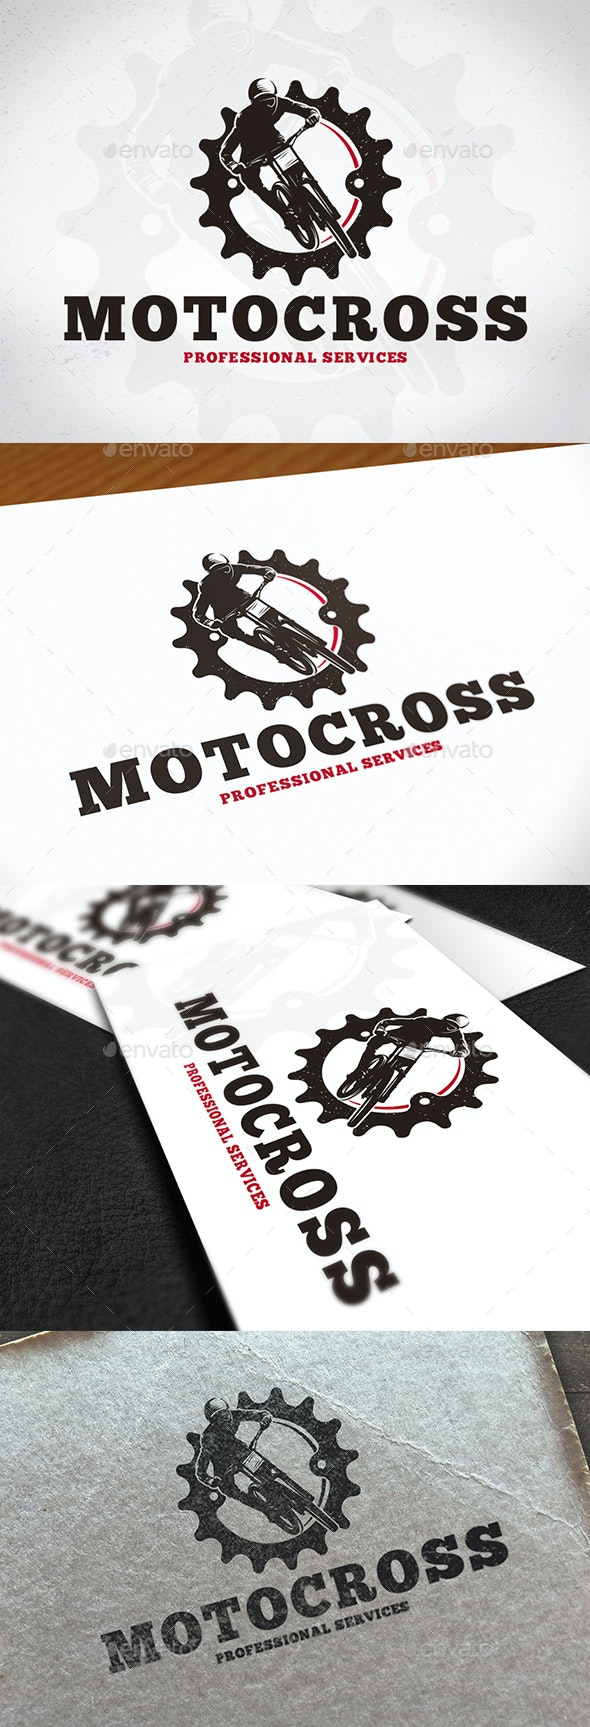 Motocross Gear Creative Logo - Sports Logo Templates